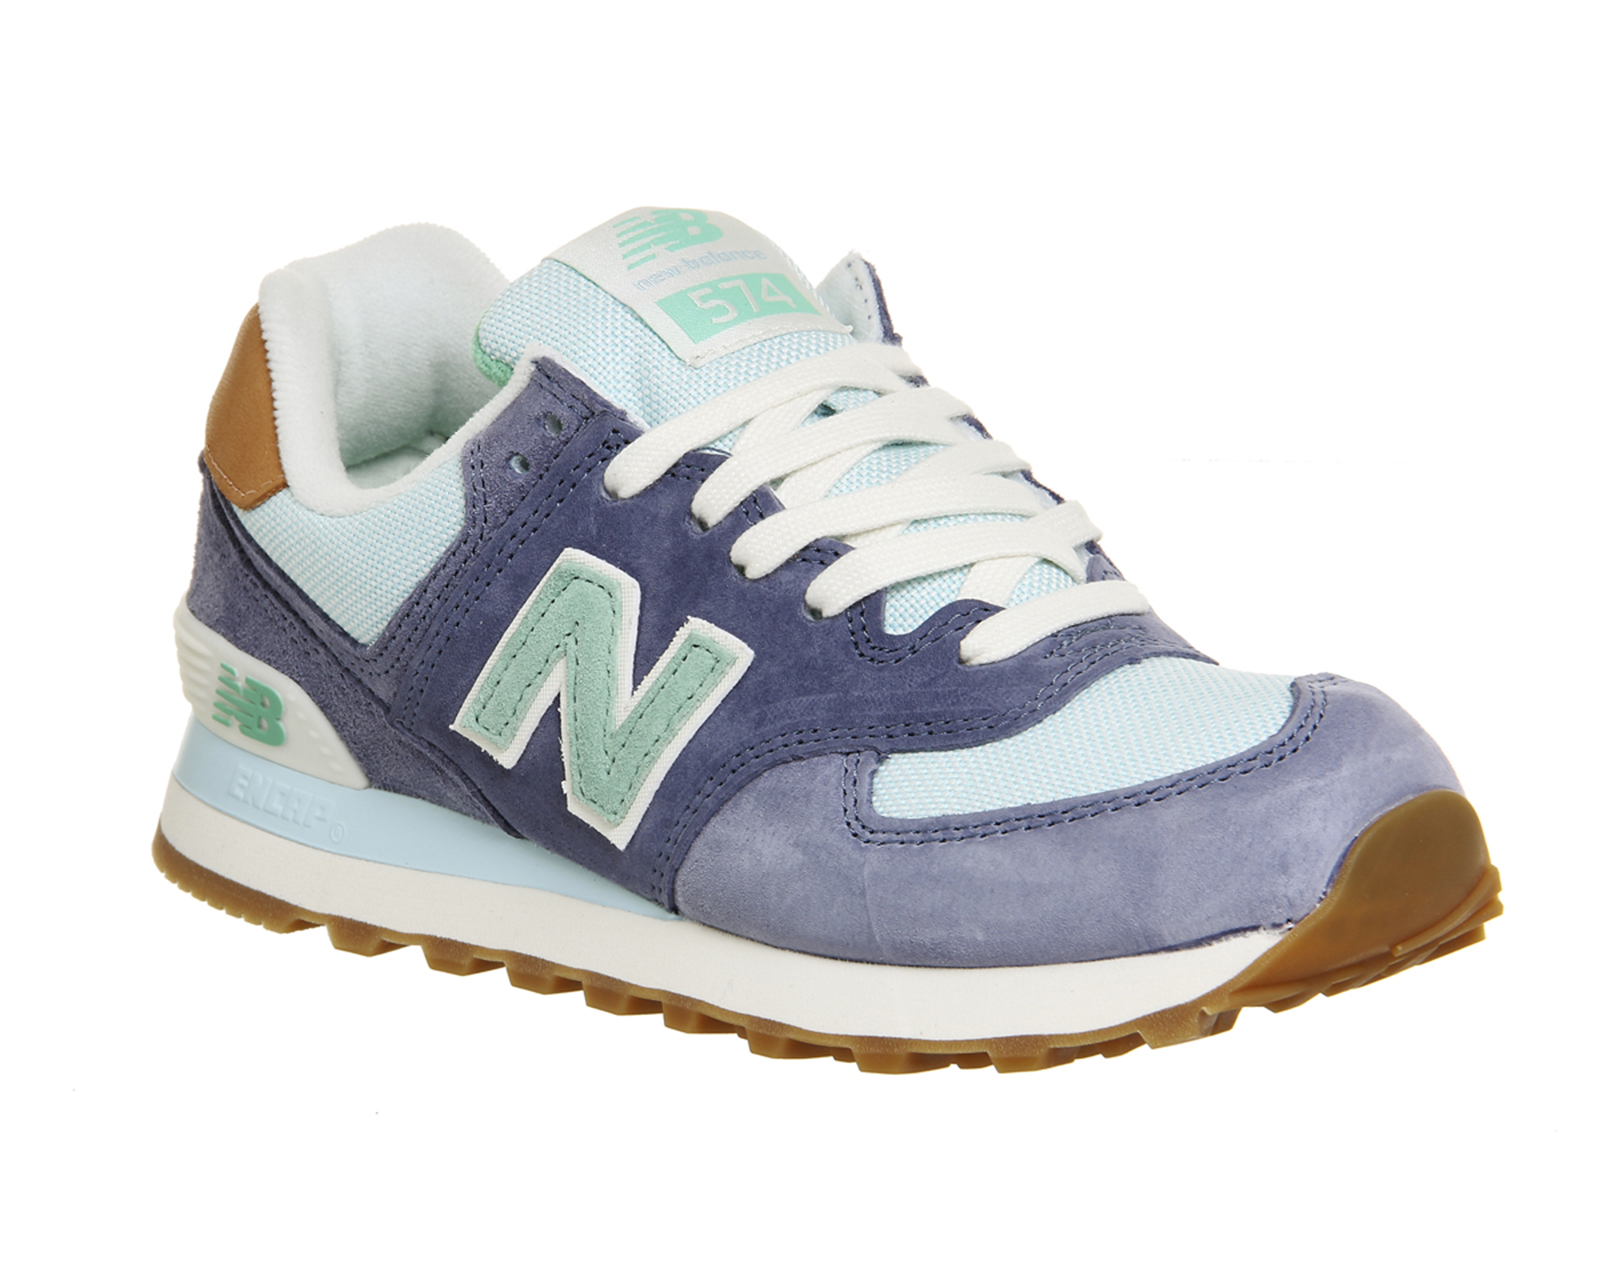 new balance 574 blue teal beach cruiser exclusive trainers. Black Bedroom Furniture Sets. Home Design Ideas